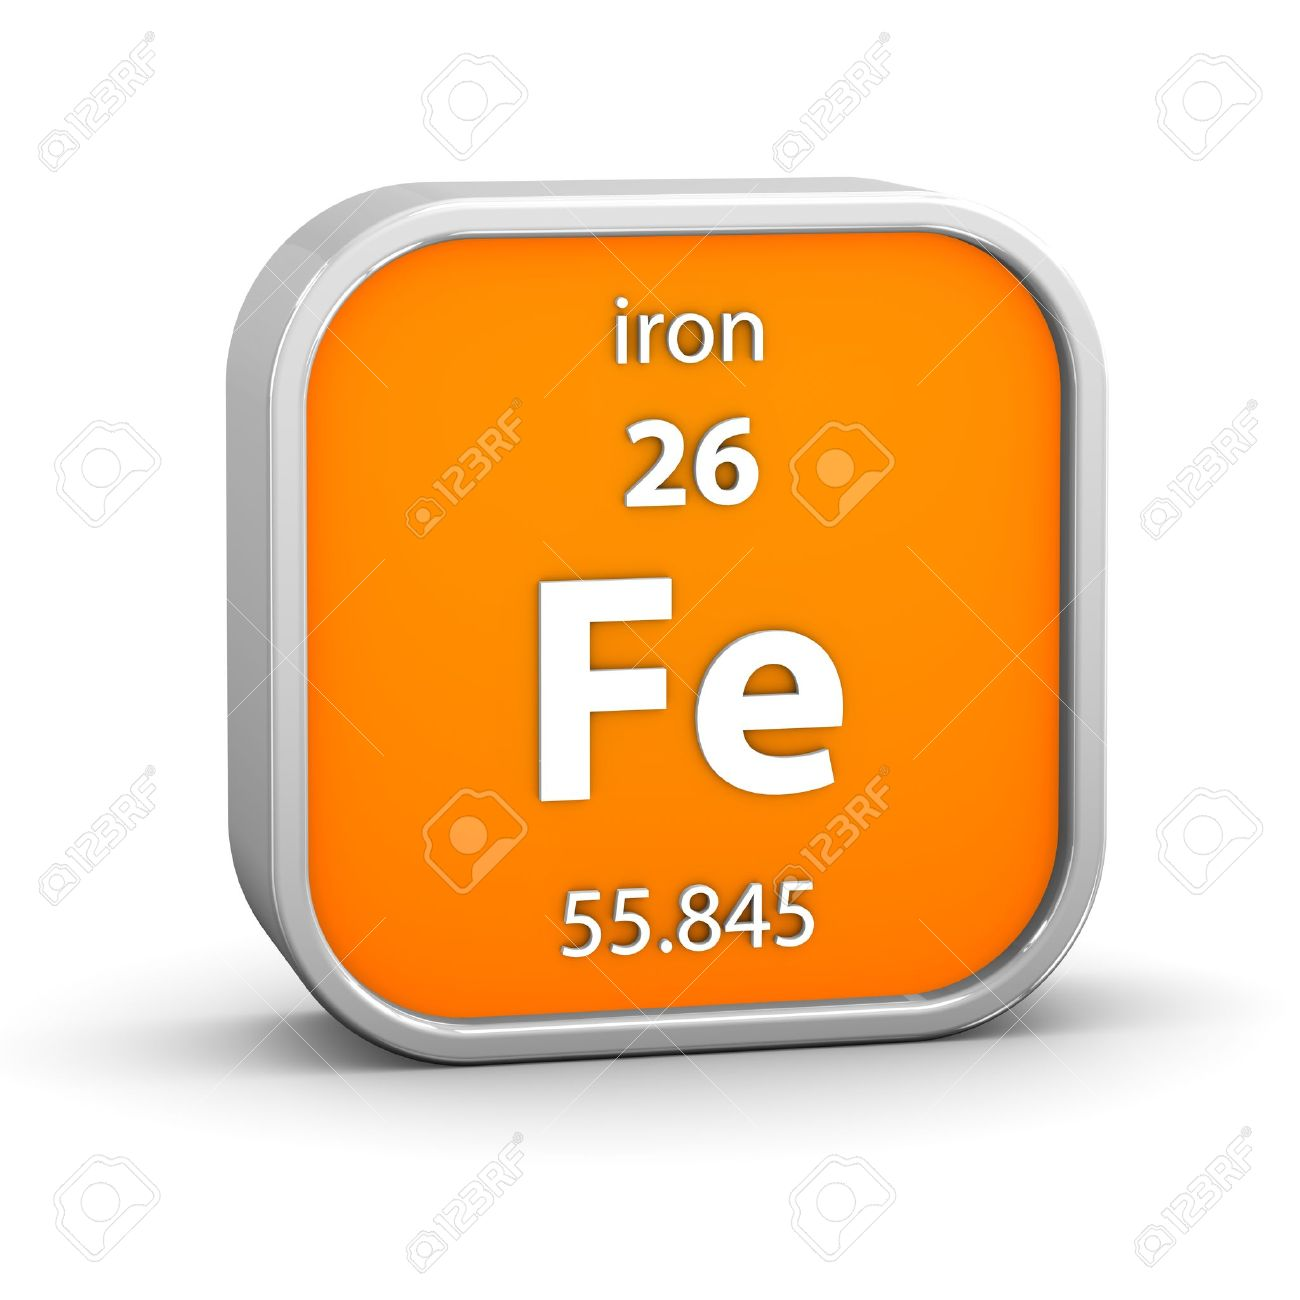 Iron material on the periodic table part of a series stock photo iron material on the periodic table part of a series stock photo 18441857 gamestrikefo Gallery